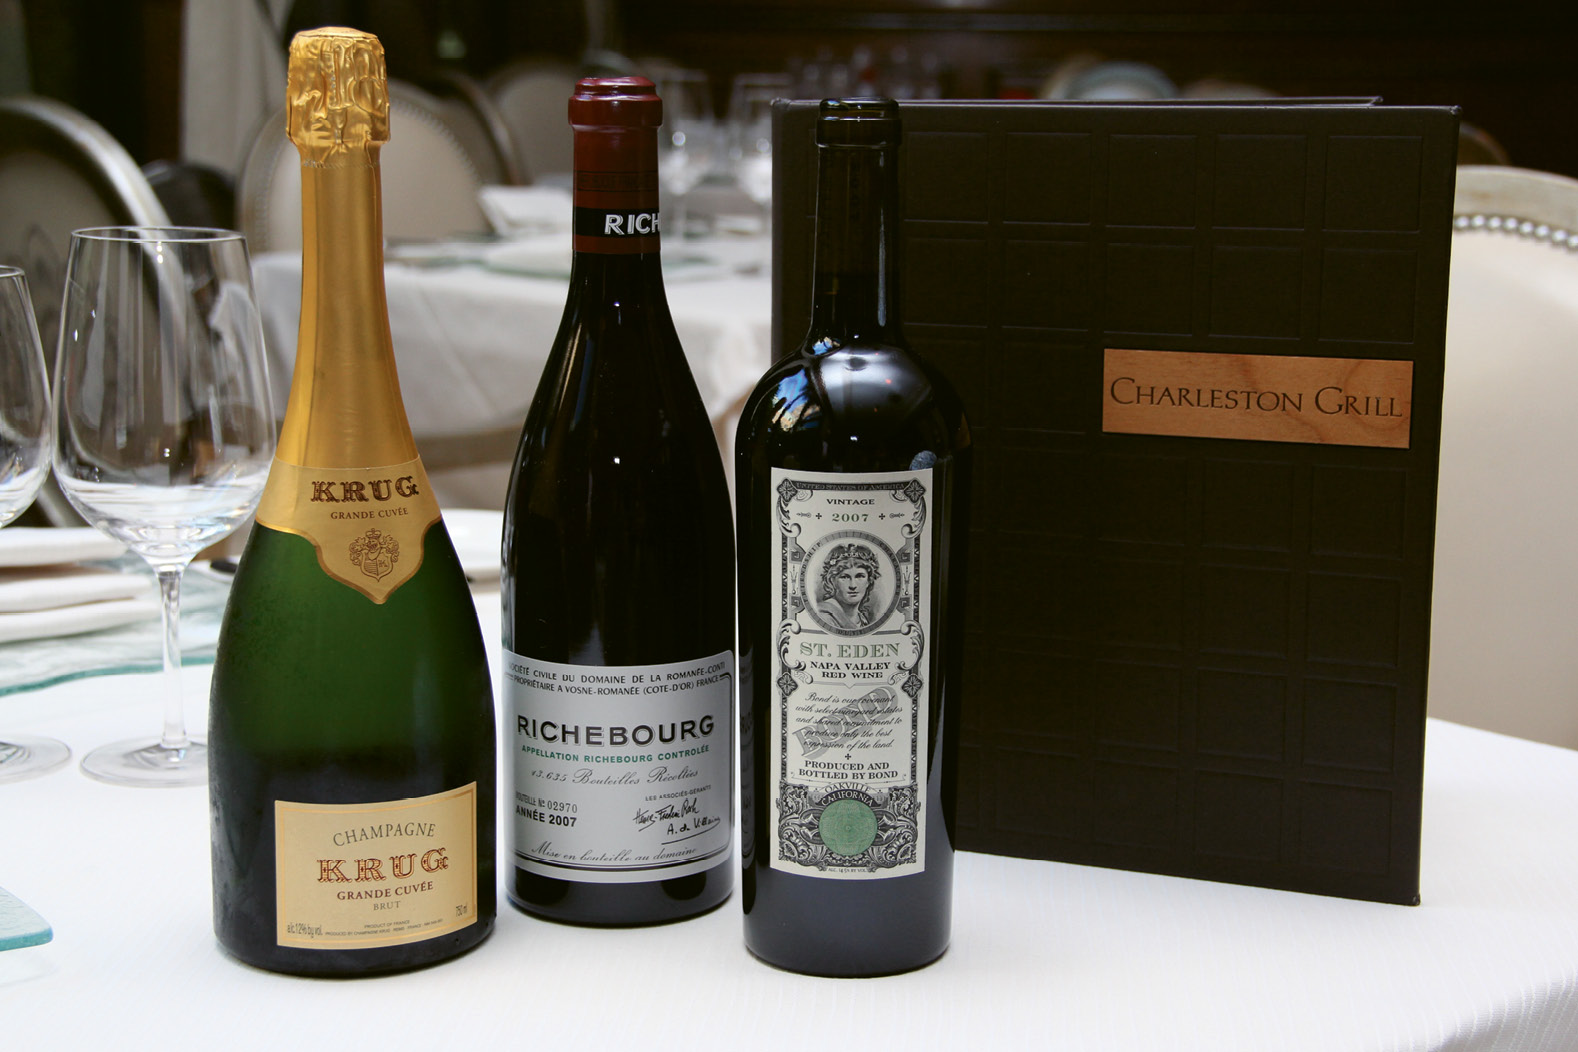 """WINE LIST: Charleston Grill; """"Charleston Grill's list is full of incredible classics, new and old, that Rick has done an amazing job curating. And FIG does a great job of finding gems from smaller producers around the globe.""""  —Kevin Johnson, The Grocery"""